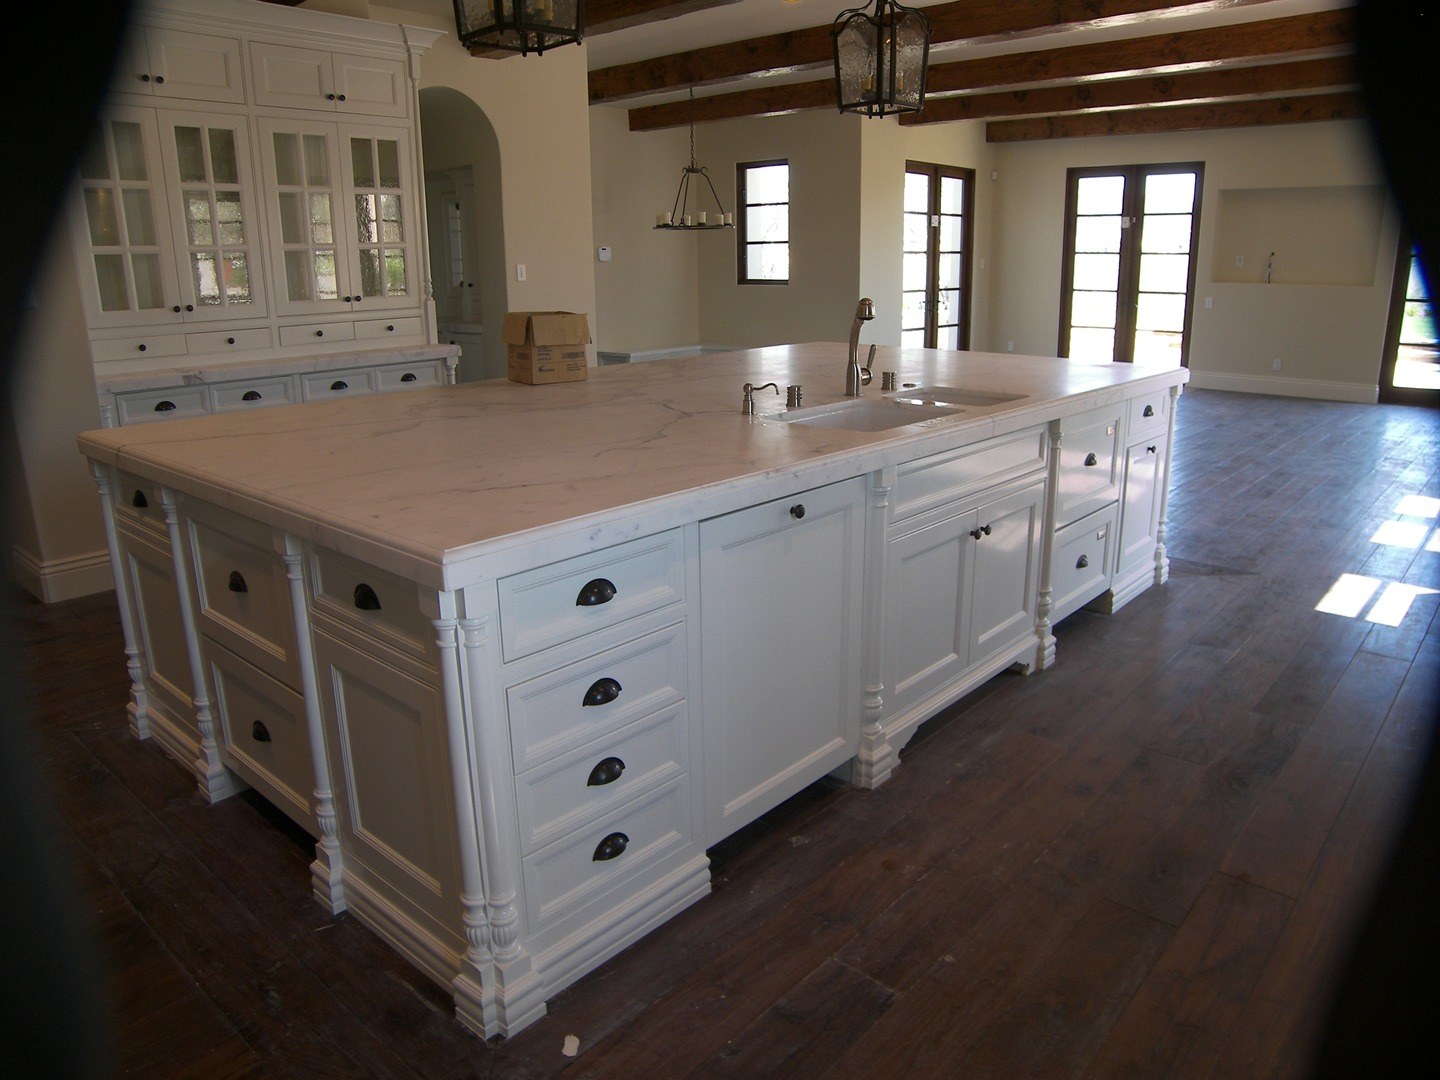 Kitchen Posts custom made by all kinds of wood products.